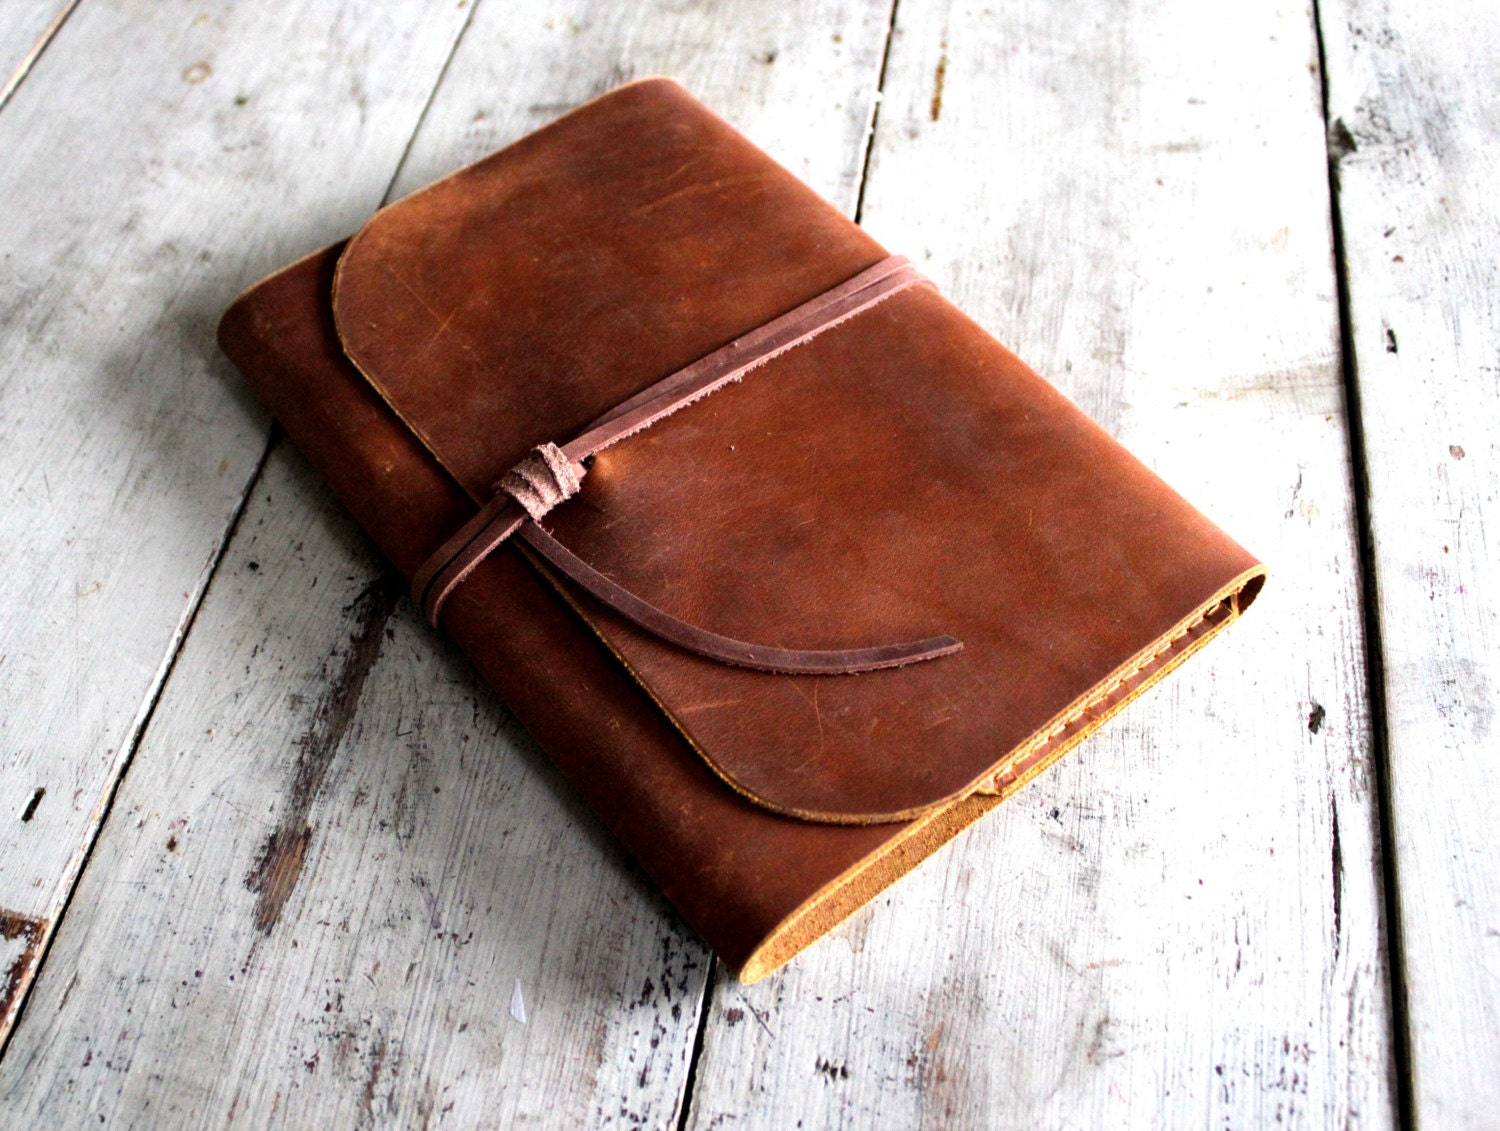 How To Make A Book Cover Leather ~ Refillable leather journal a